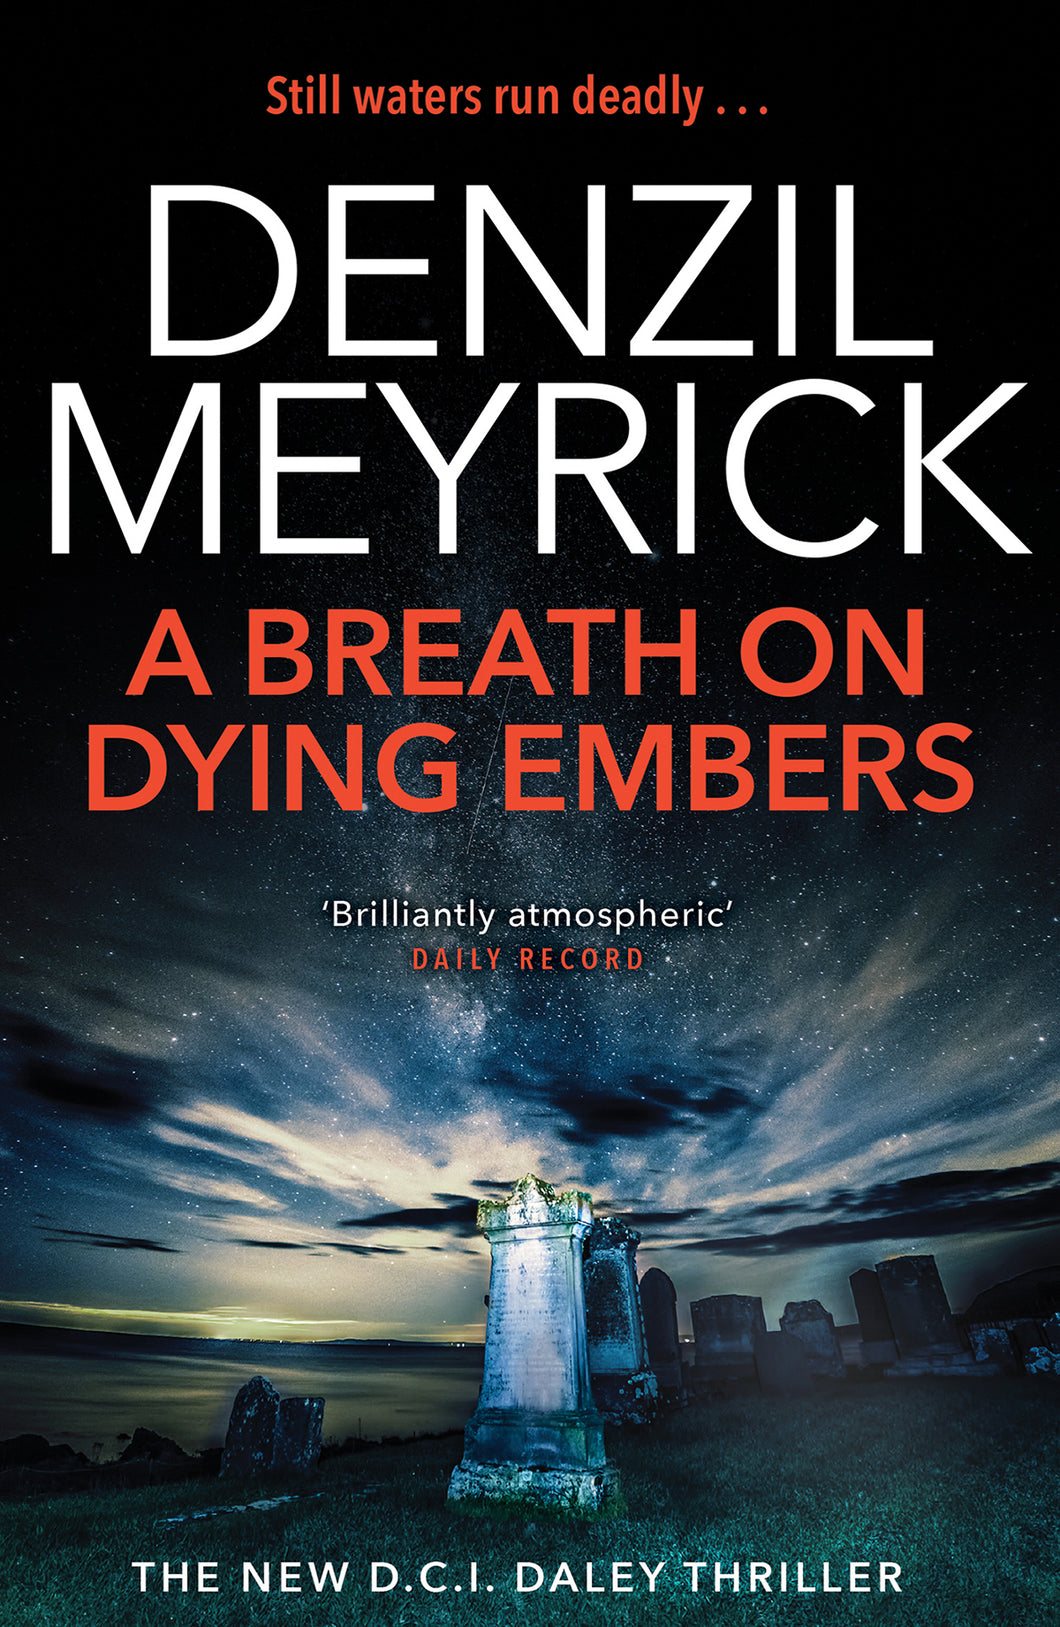 A BREATH ON DYING EMBERS (Book 7)